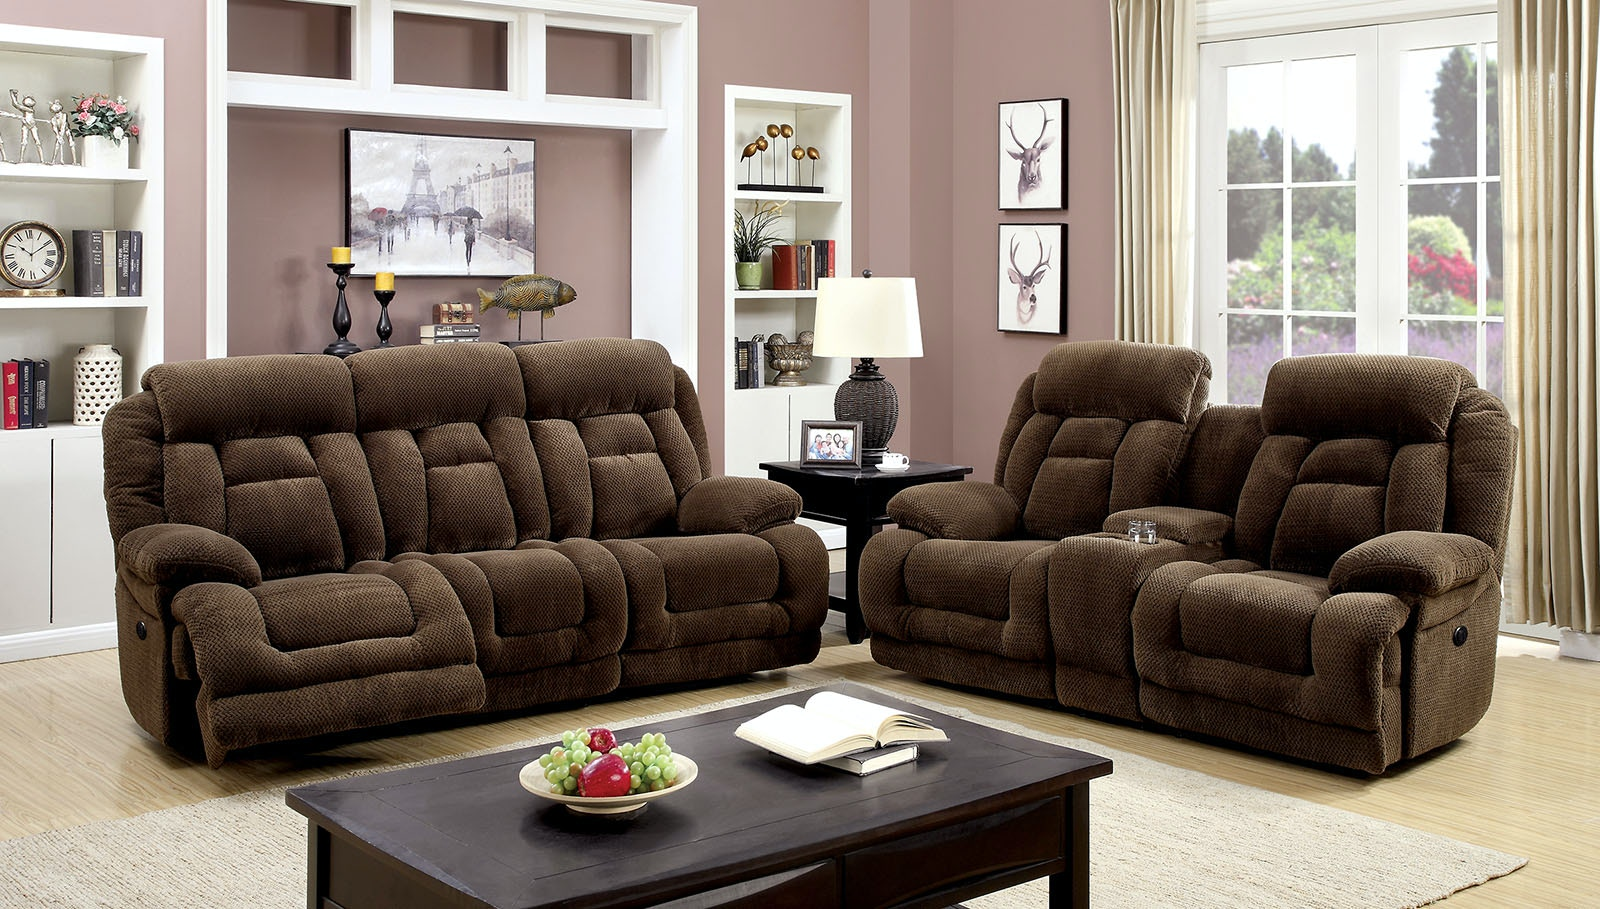 High Quality Furniture Of America Living Room Sofa + Love Seat + Chair CM6010 PM 3PC At  The Furniture Mall